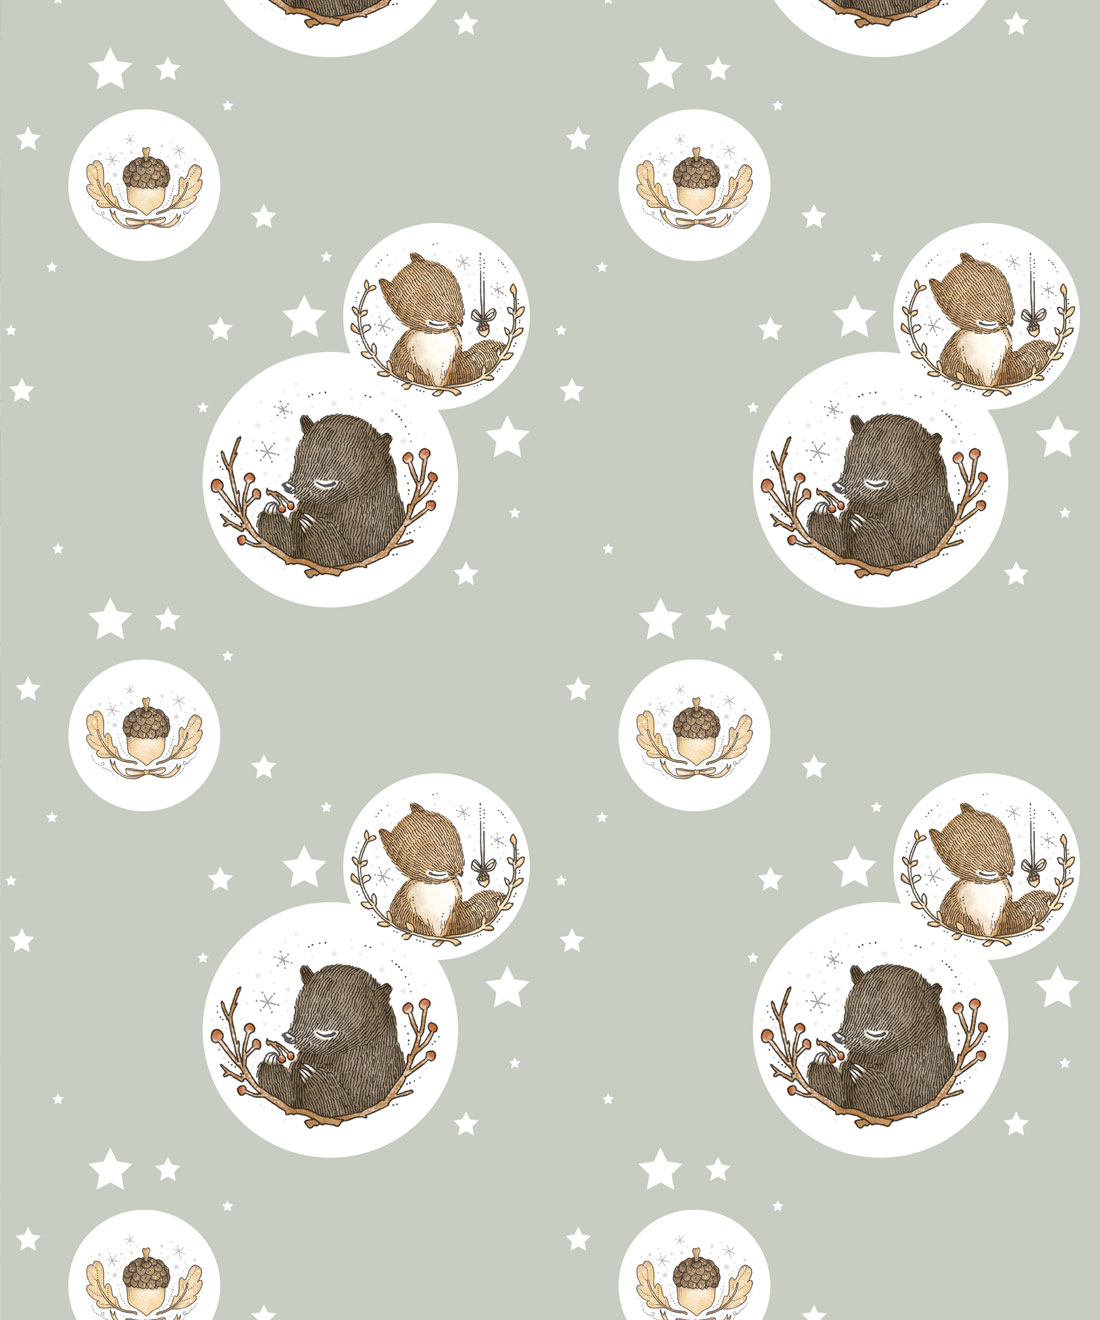 Bear & Squirrel Wallpaper